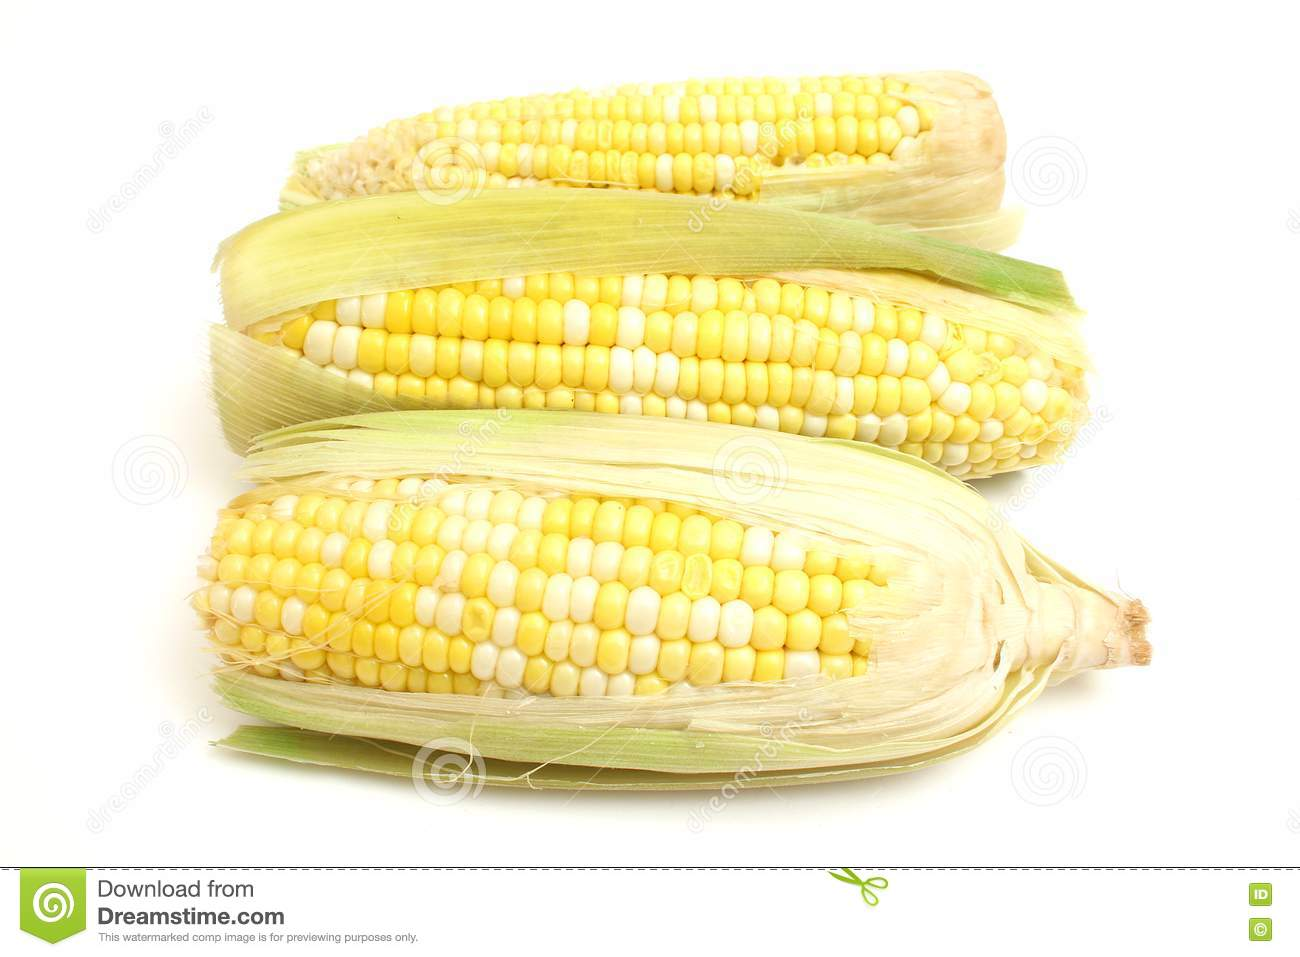 Free Stock Photography 3 Ears Of Corn Picture Image 2350137